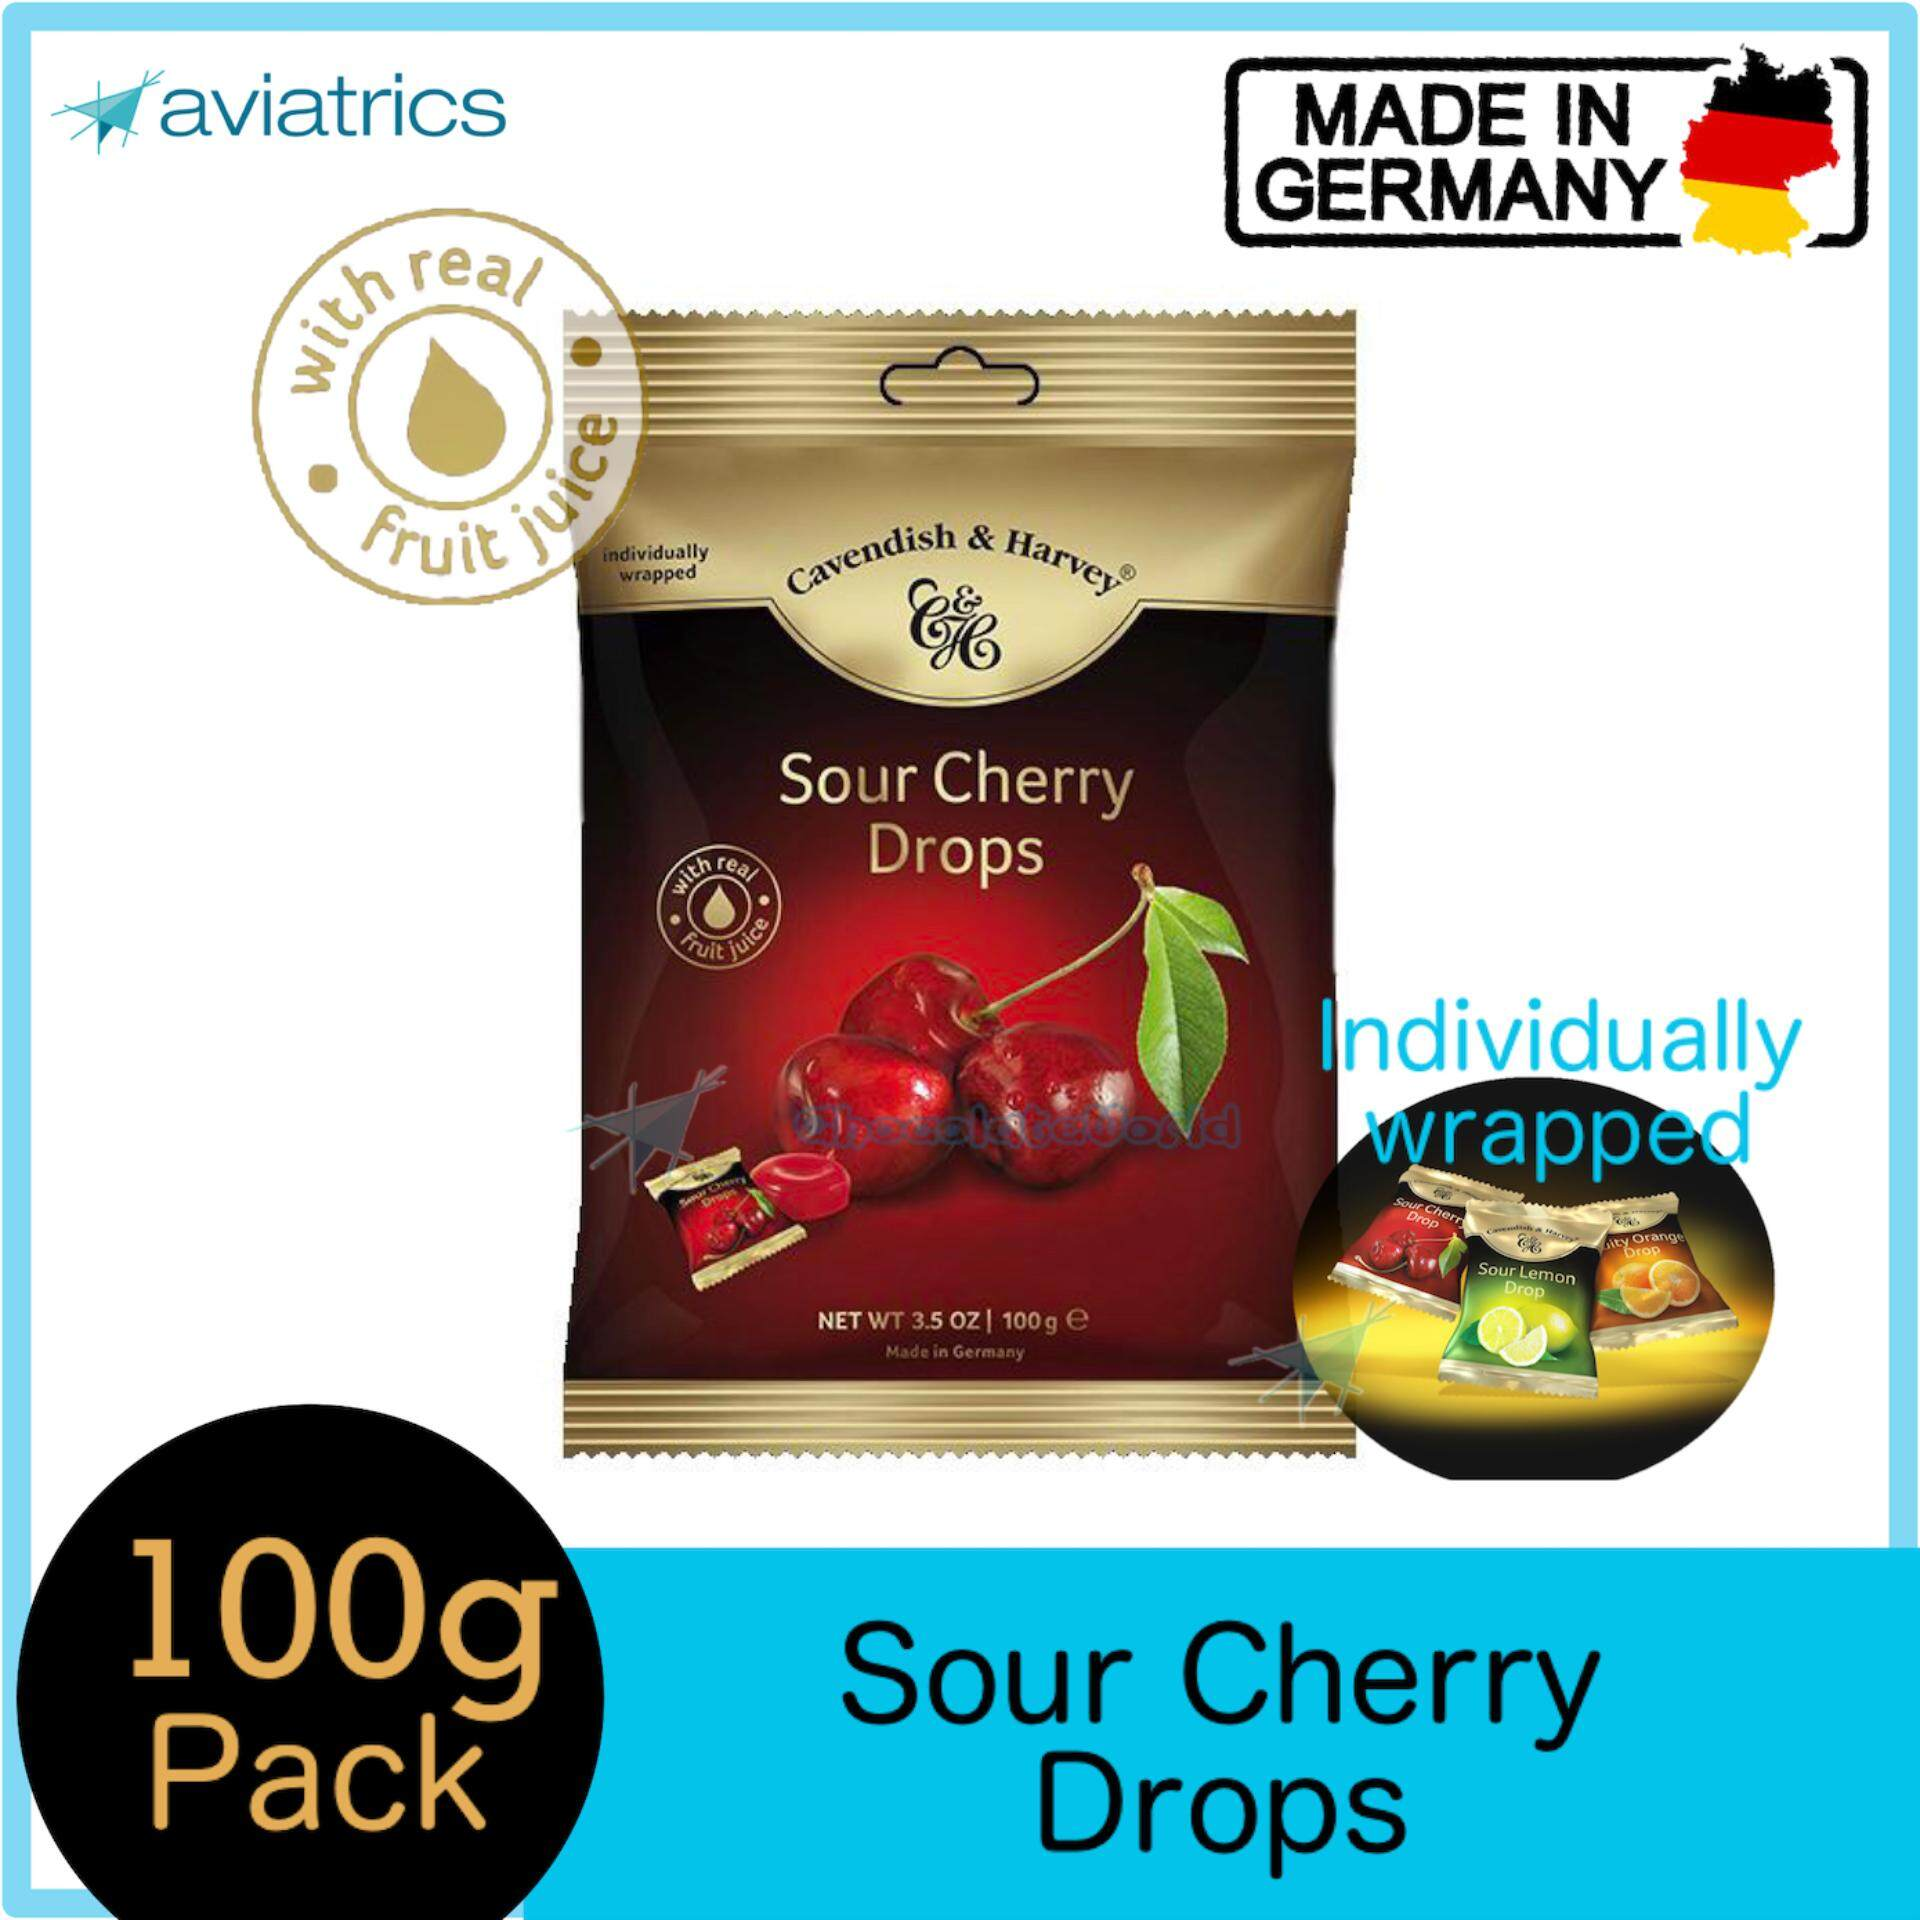 Cavendish Harvey Sour Cherry Drops Individually Wrapped 100g (Made in Germany)